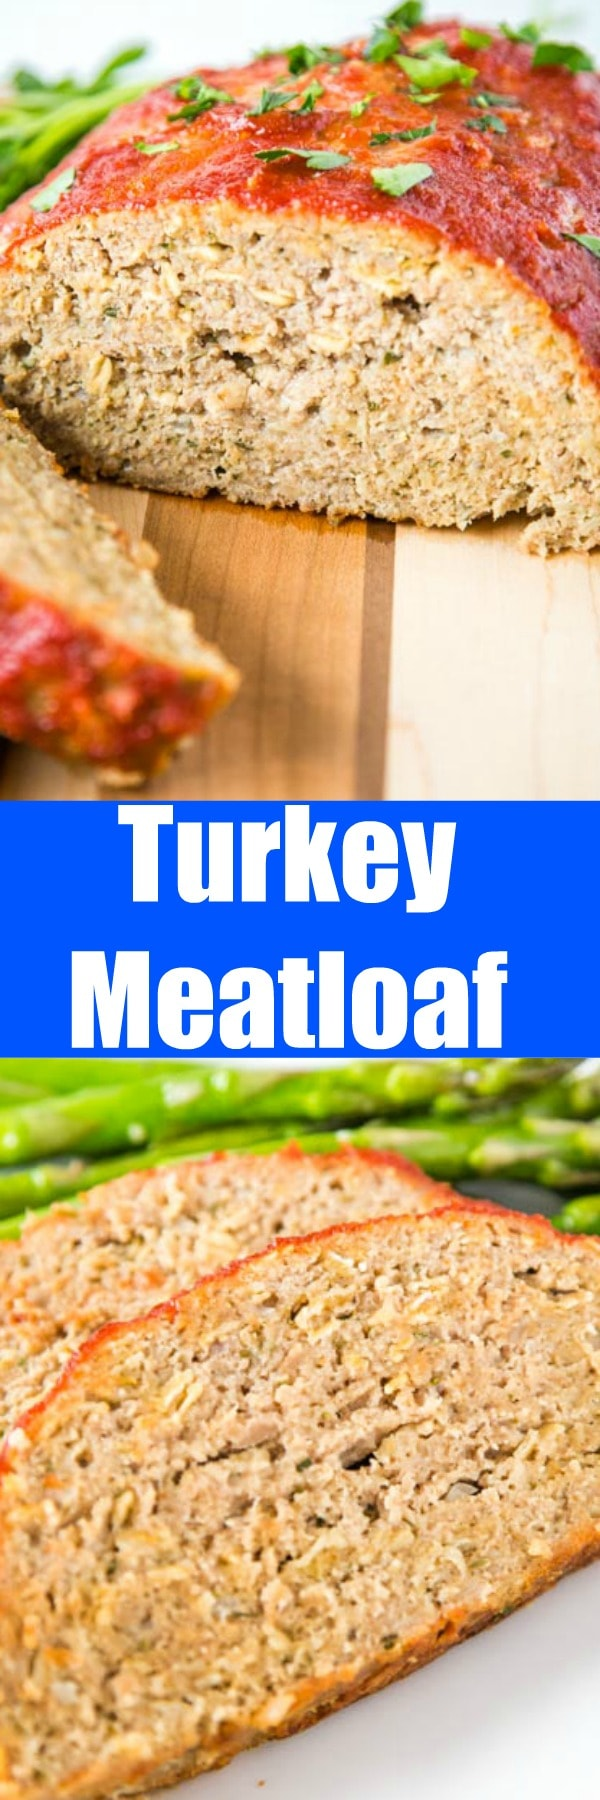 Easy Turkey Meatloaf - Use ground turkey to make this flavorful, moist, tender and delicious turkey meatloaf recipe. Great comfort food that is healthy and tasty!